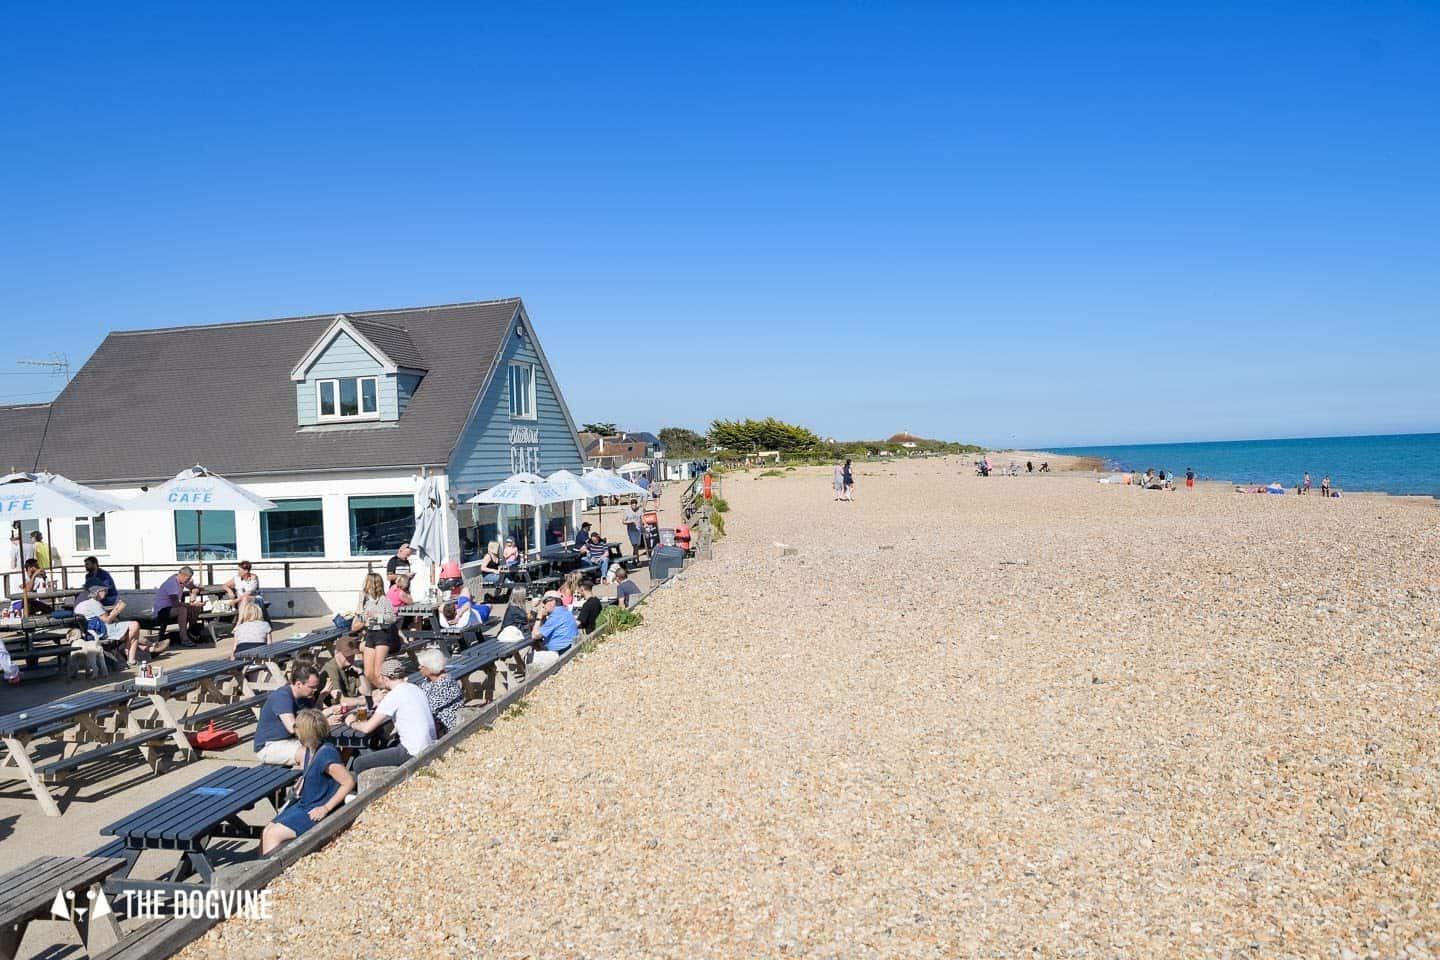 The Best Dog-Friendly Beaches in West Sussex - Ferring Beach and Bluebird Cafe